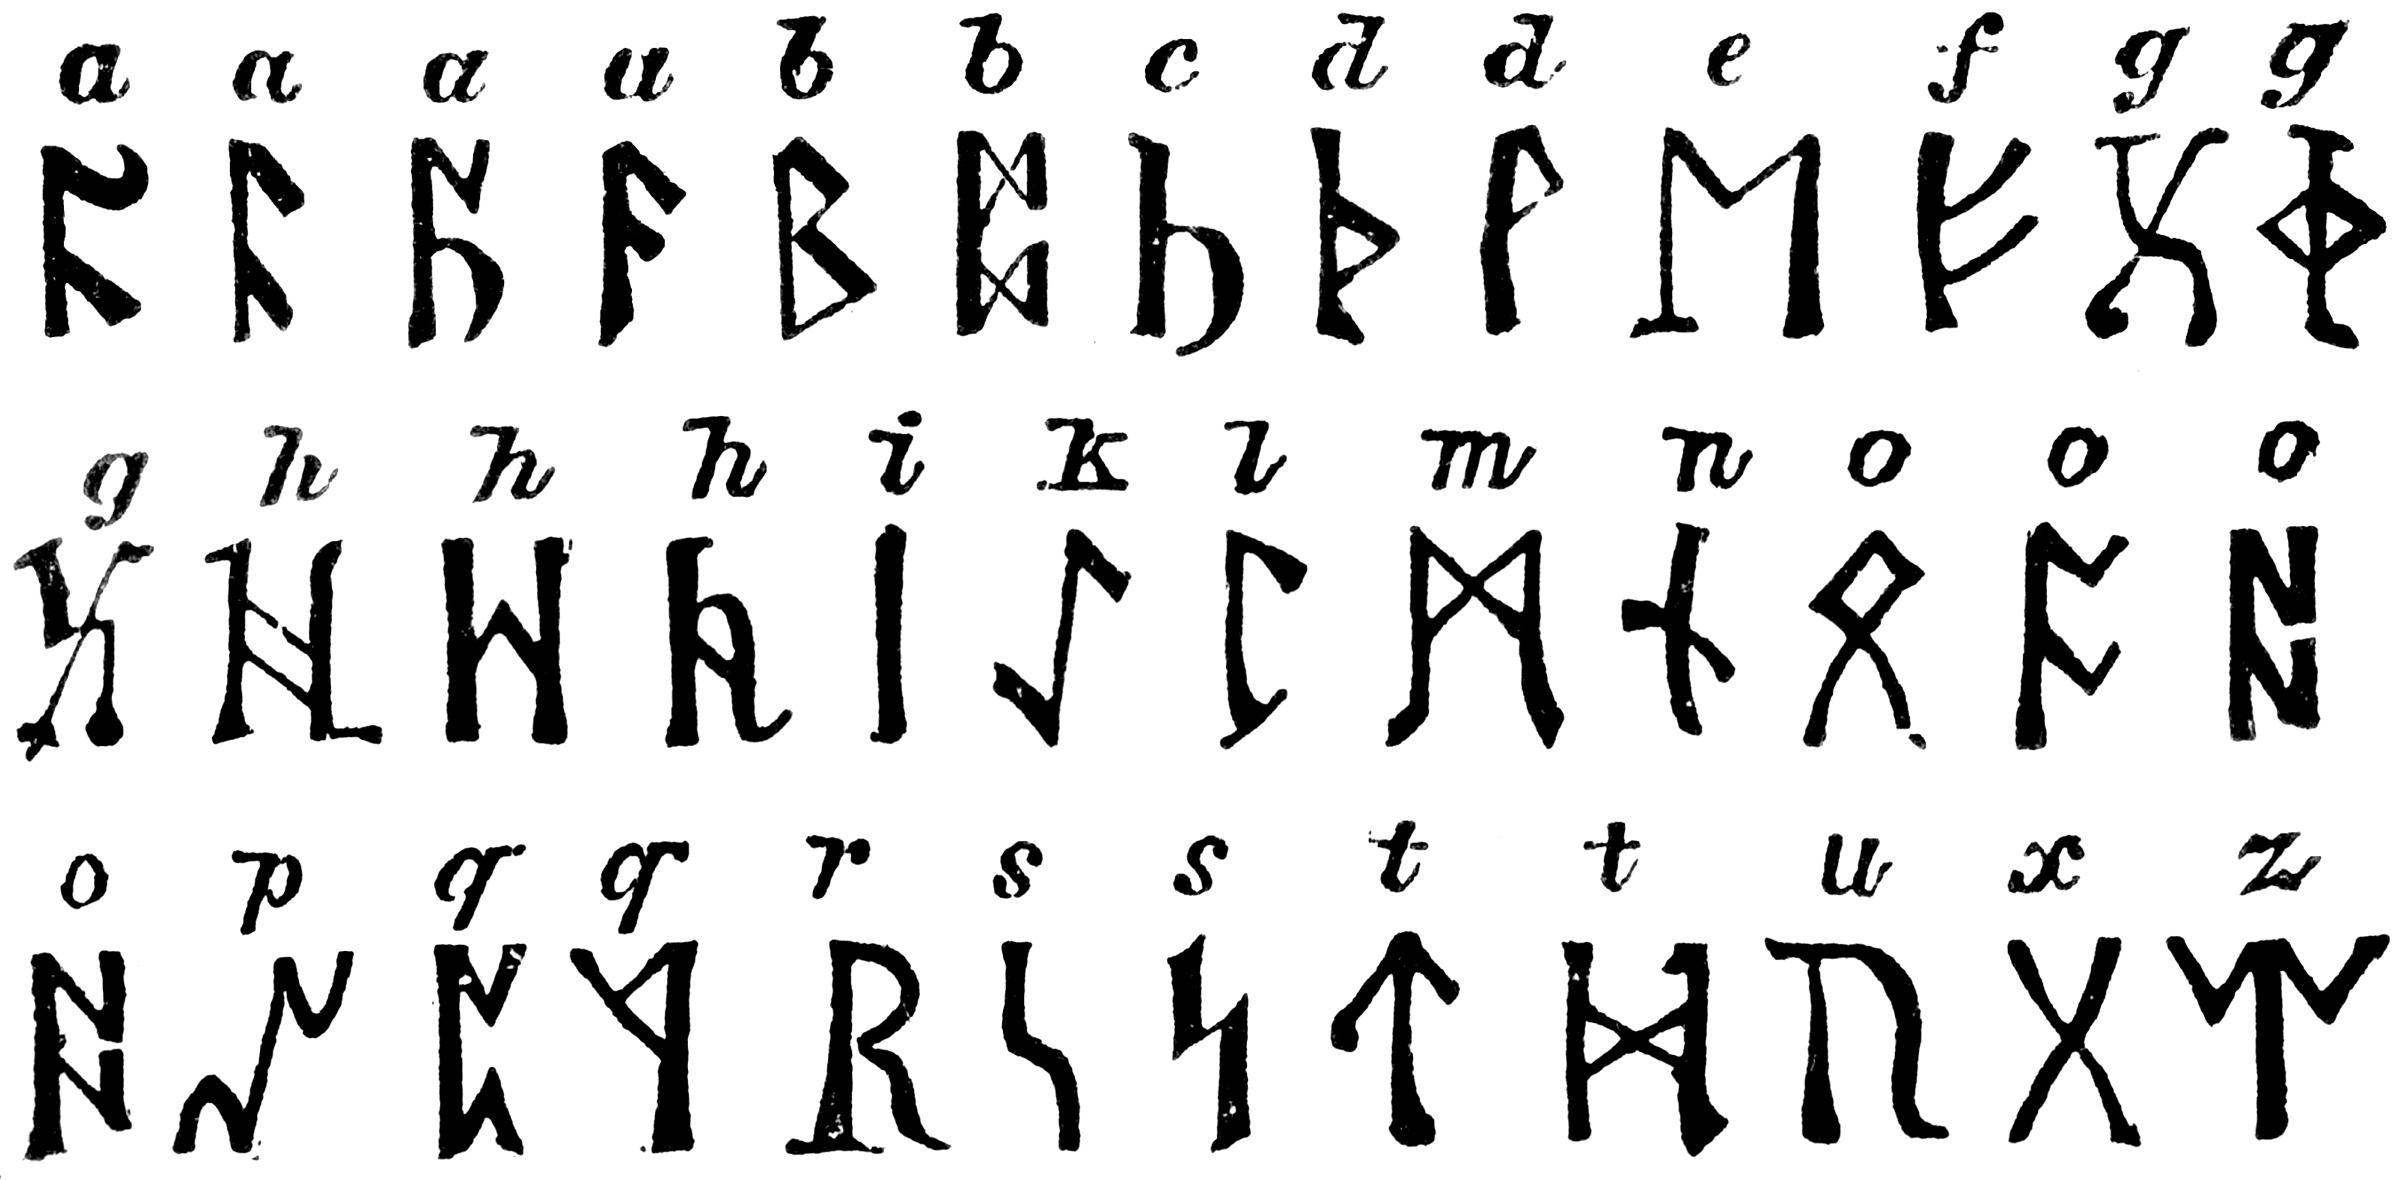 Skyrim Dragon Language Translation To English